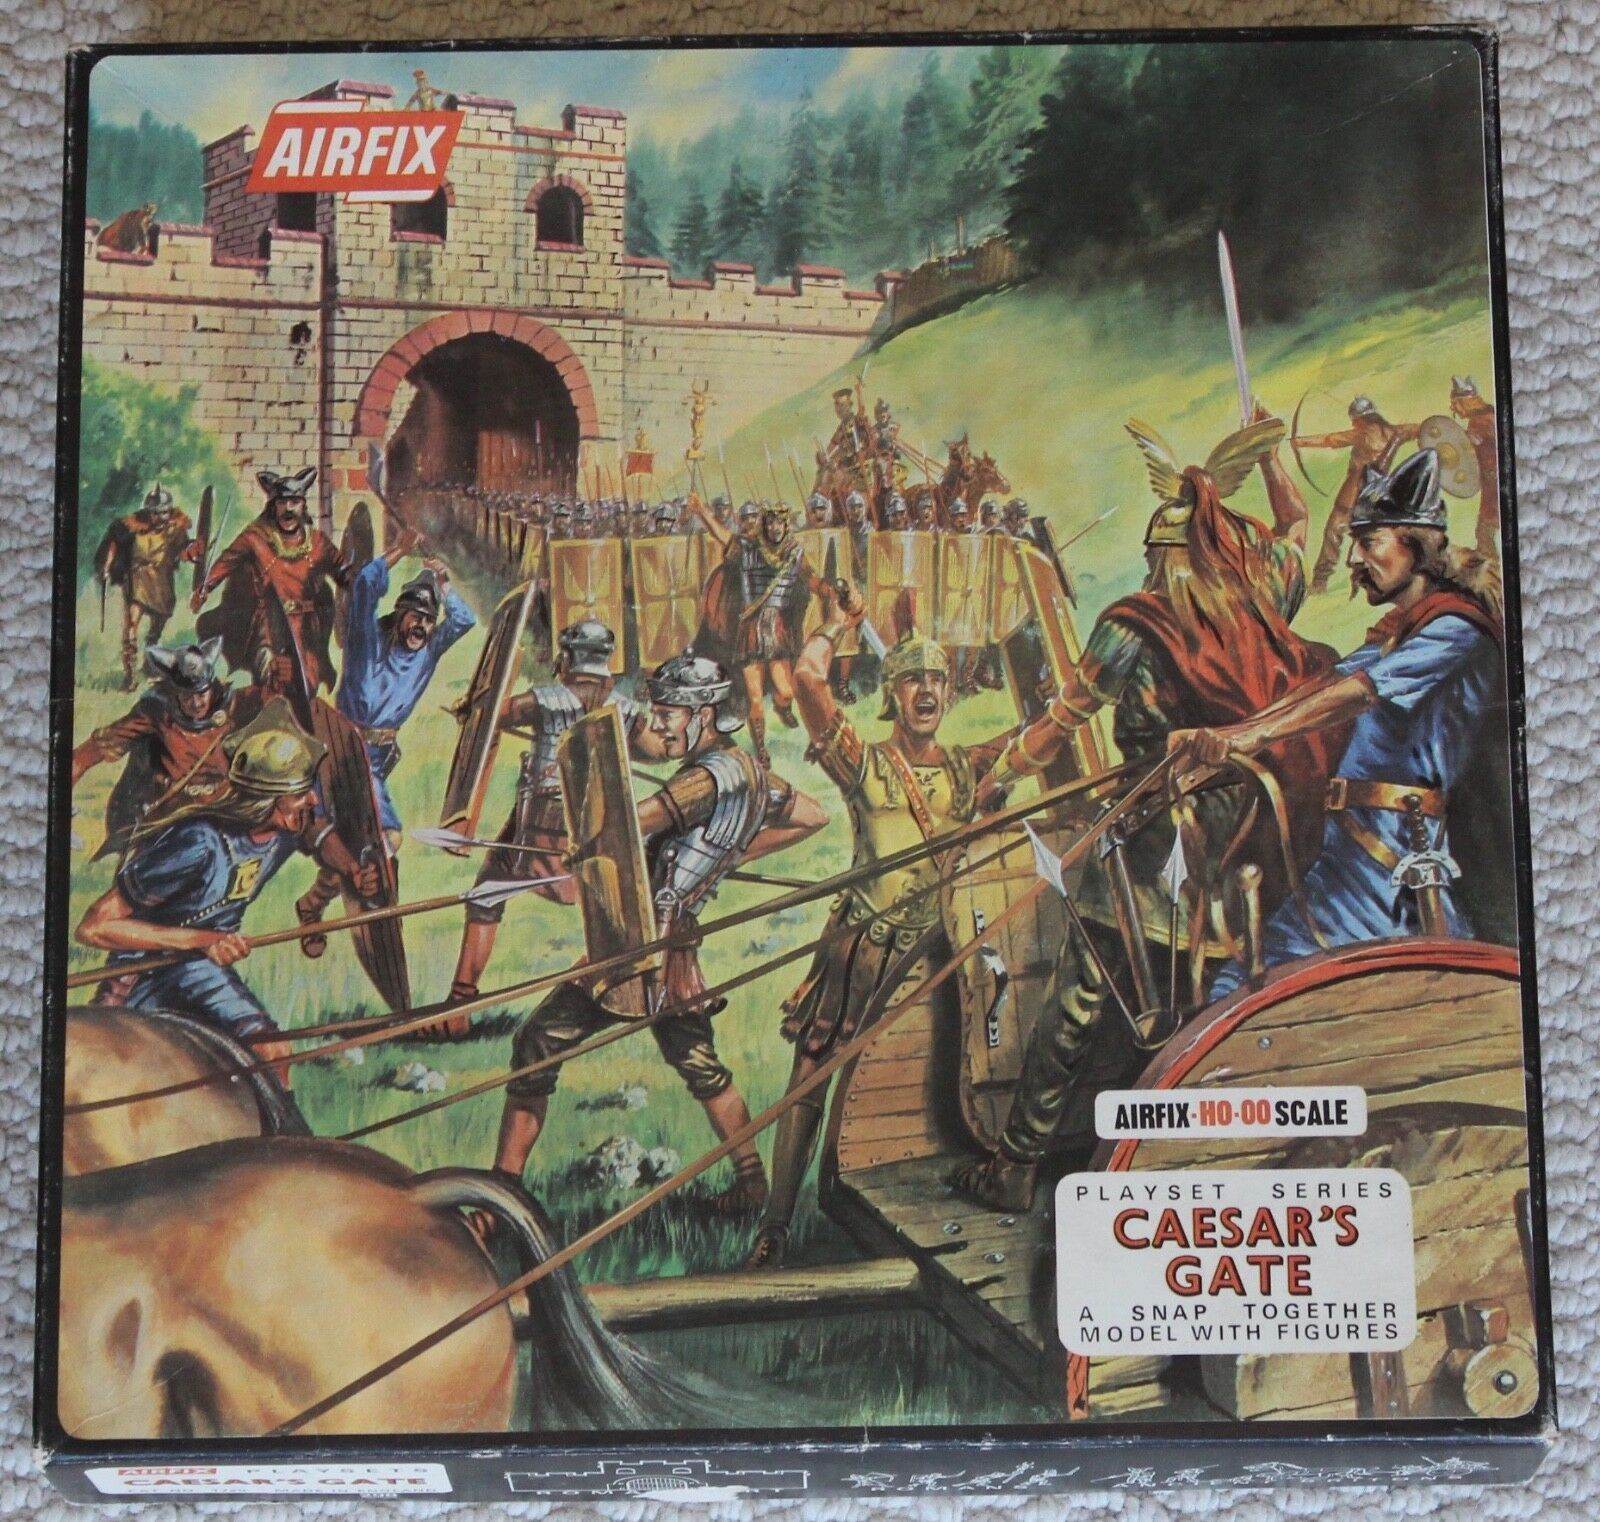 Airfix 1 72 toy soldiers model kits ho oo caesars gate romans britons cat 1720